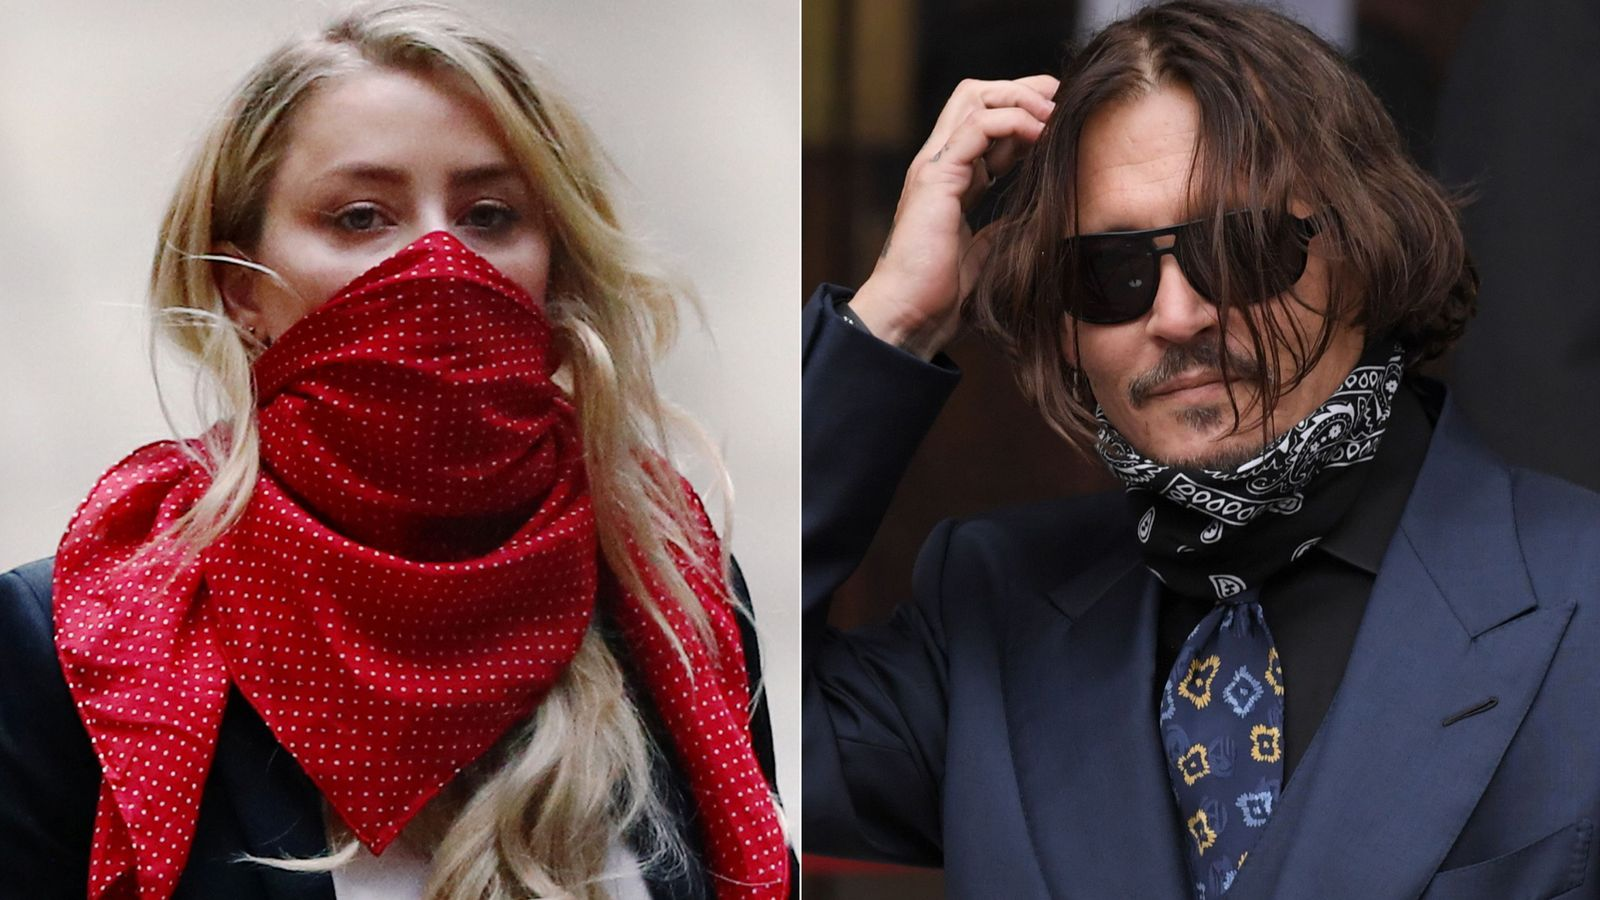 Johnny Depp v Amber Heard: All the evidence from day three of explosive libel trial